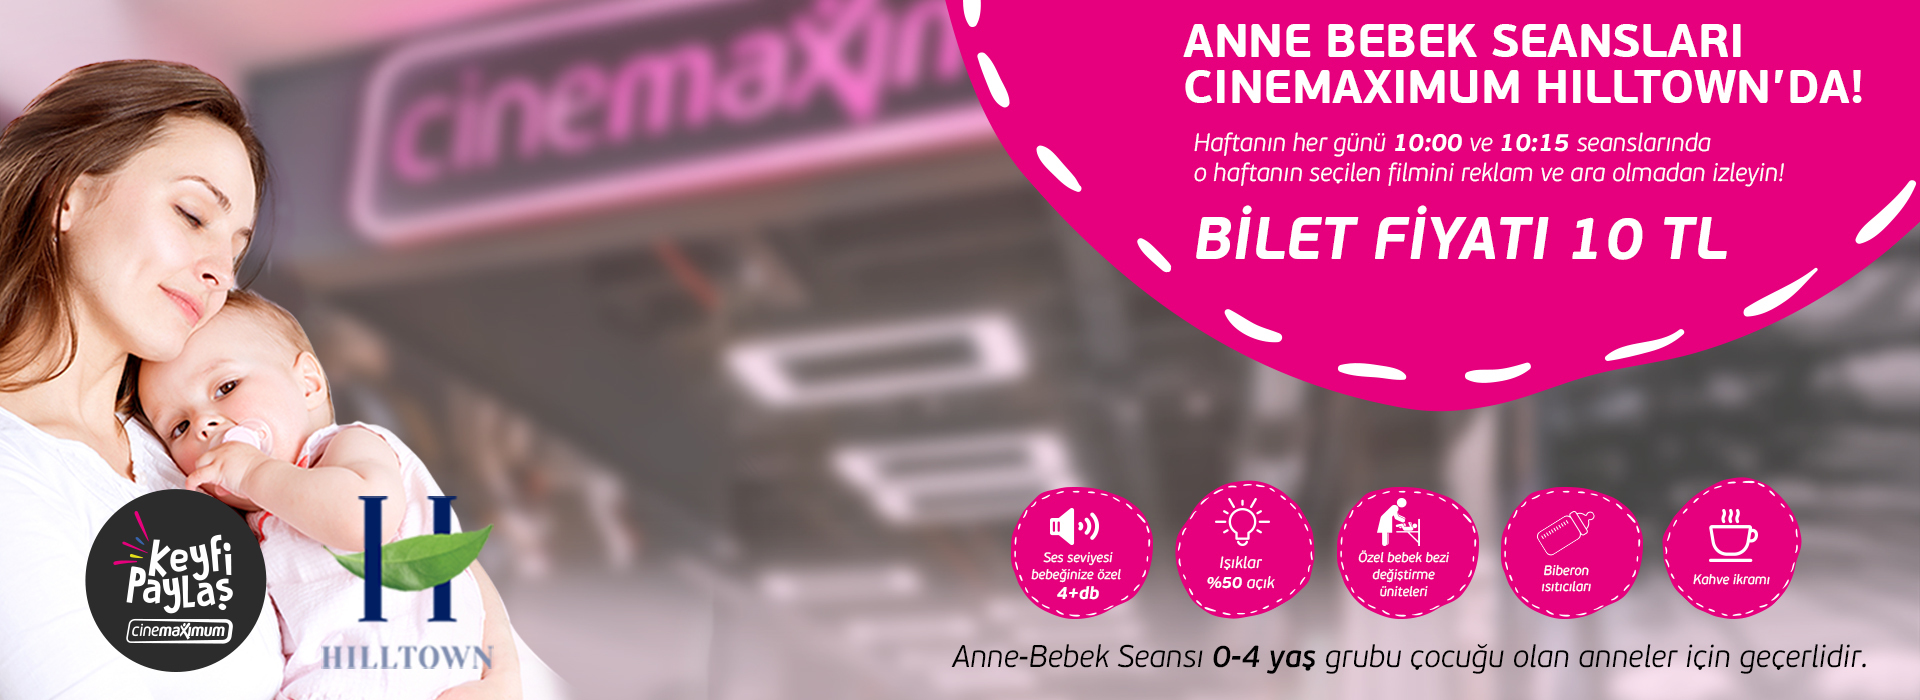 Anne Bebek Seansları Cinemaximum Hilltown'da!